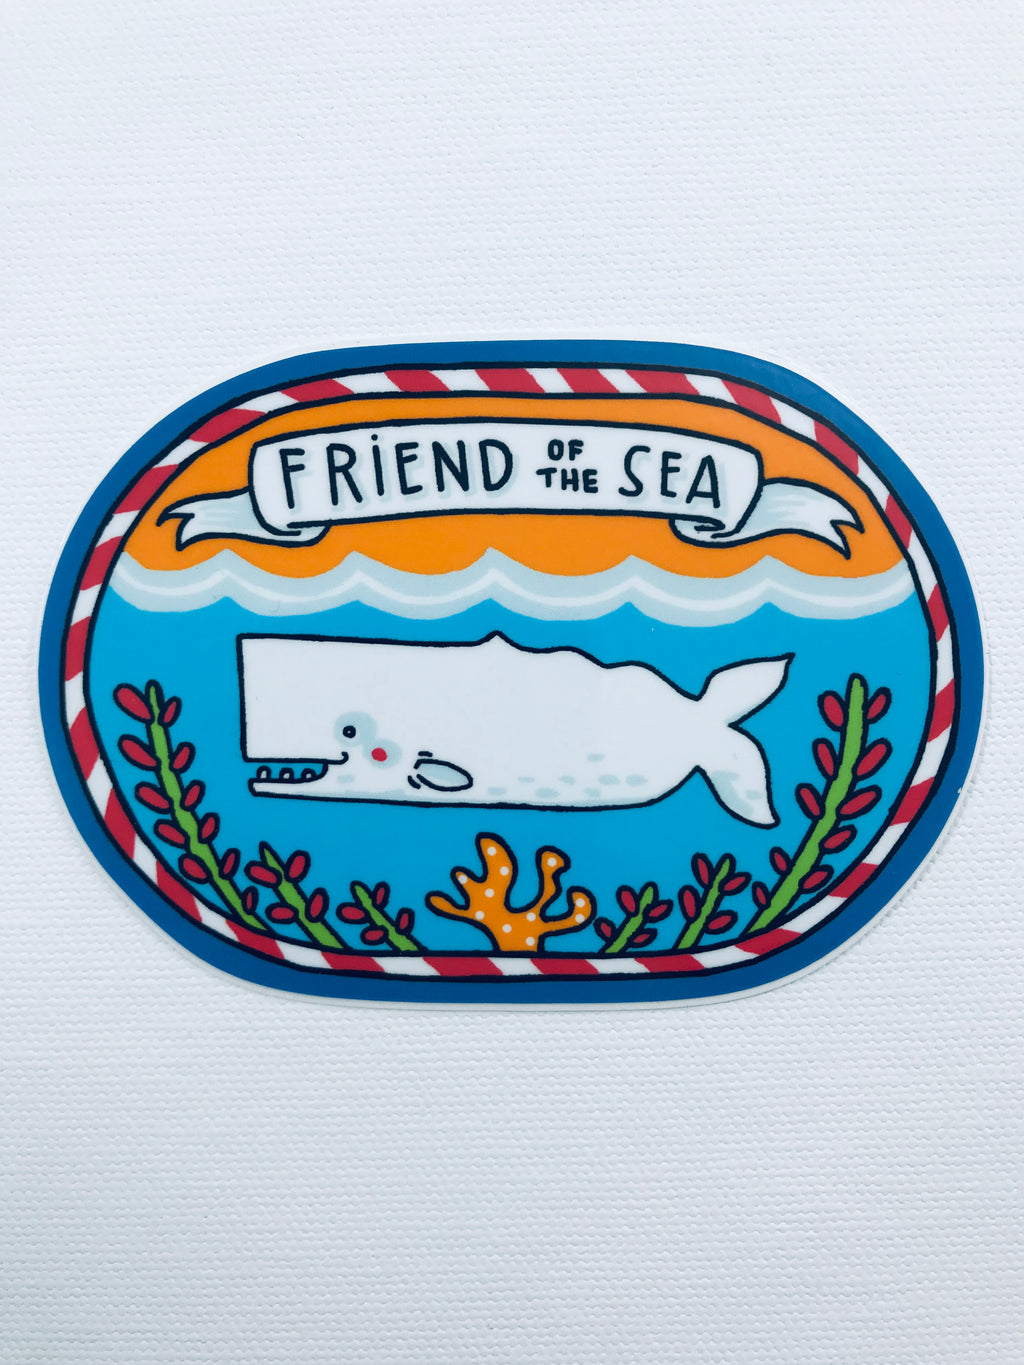 Friend of the Sea Sticker